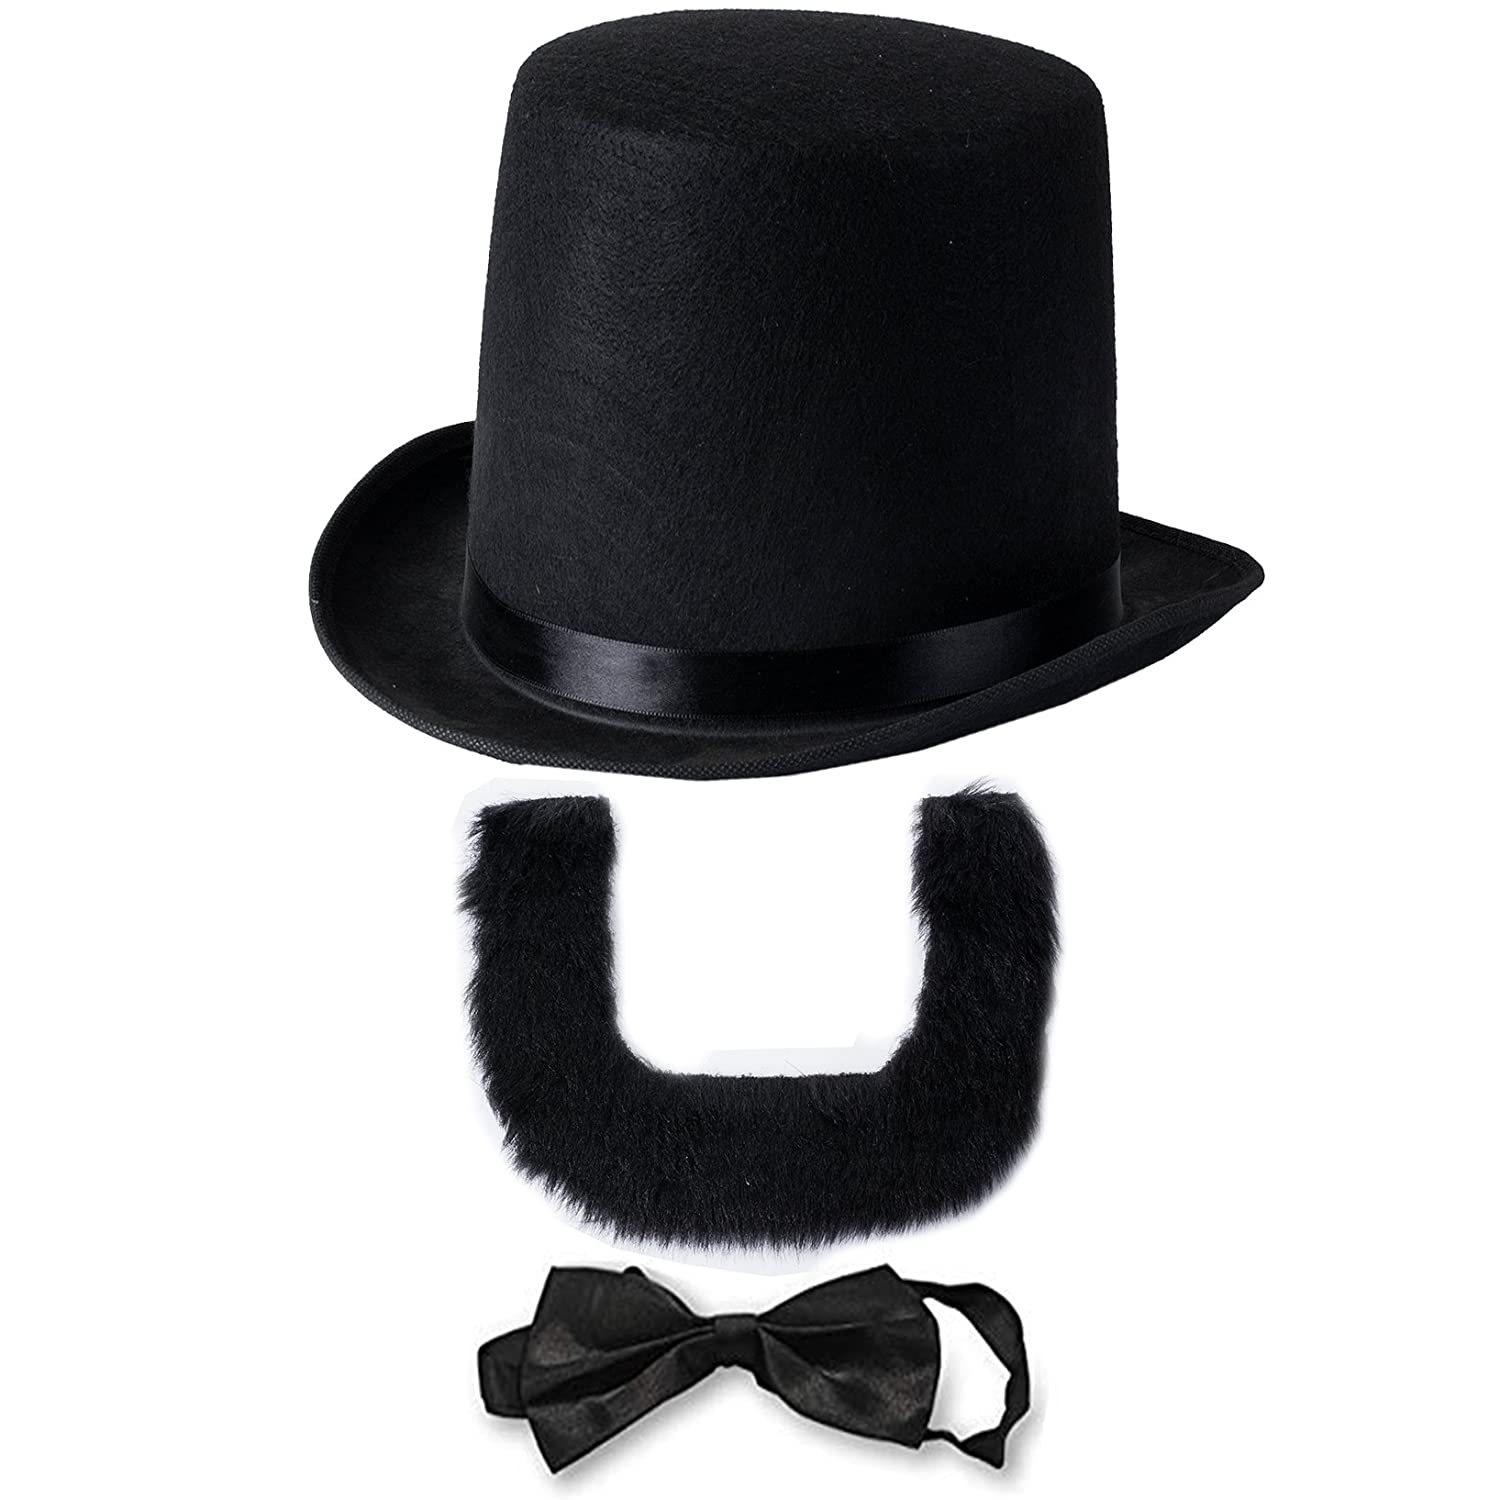 Funny Party Hats Abraham Lincoln Costume Set - Hat with Beard and Necktie by (3 PC Set)